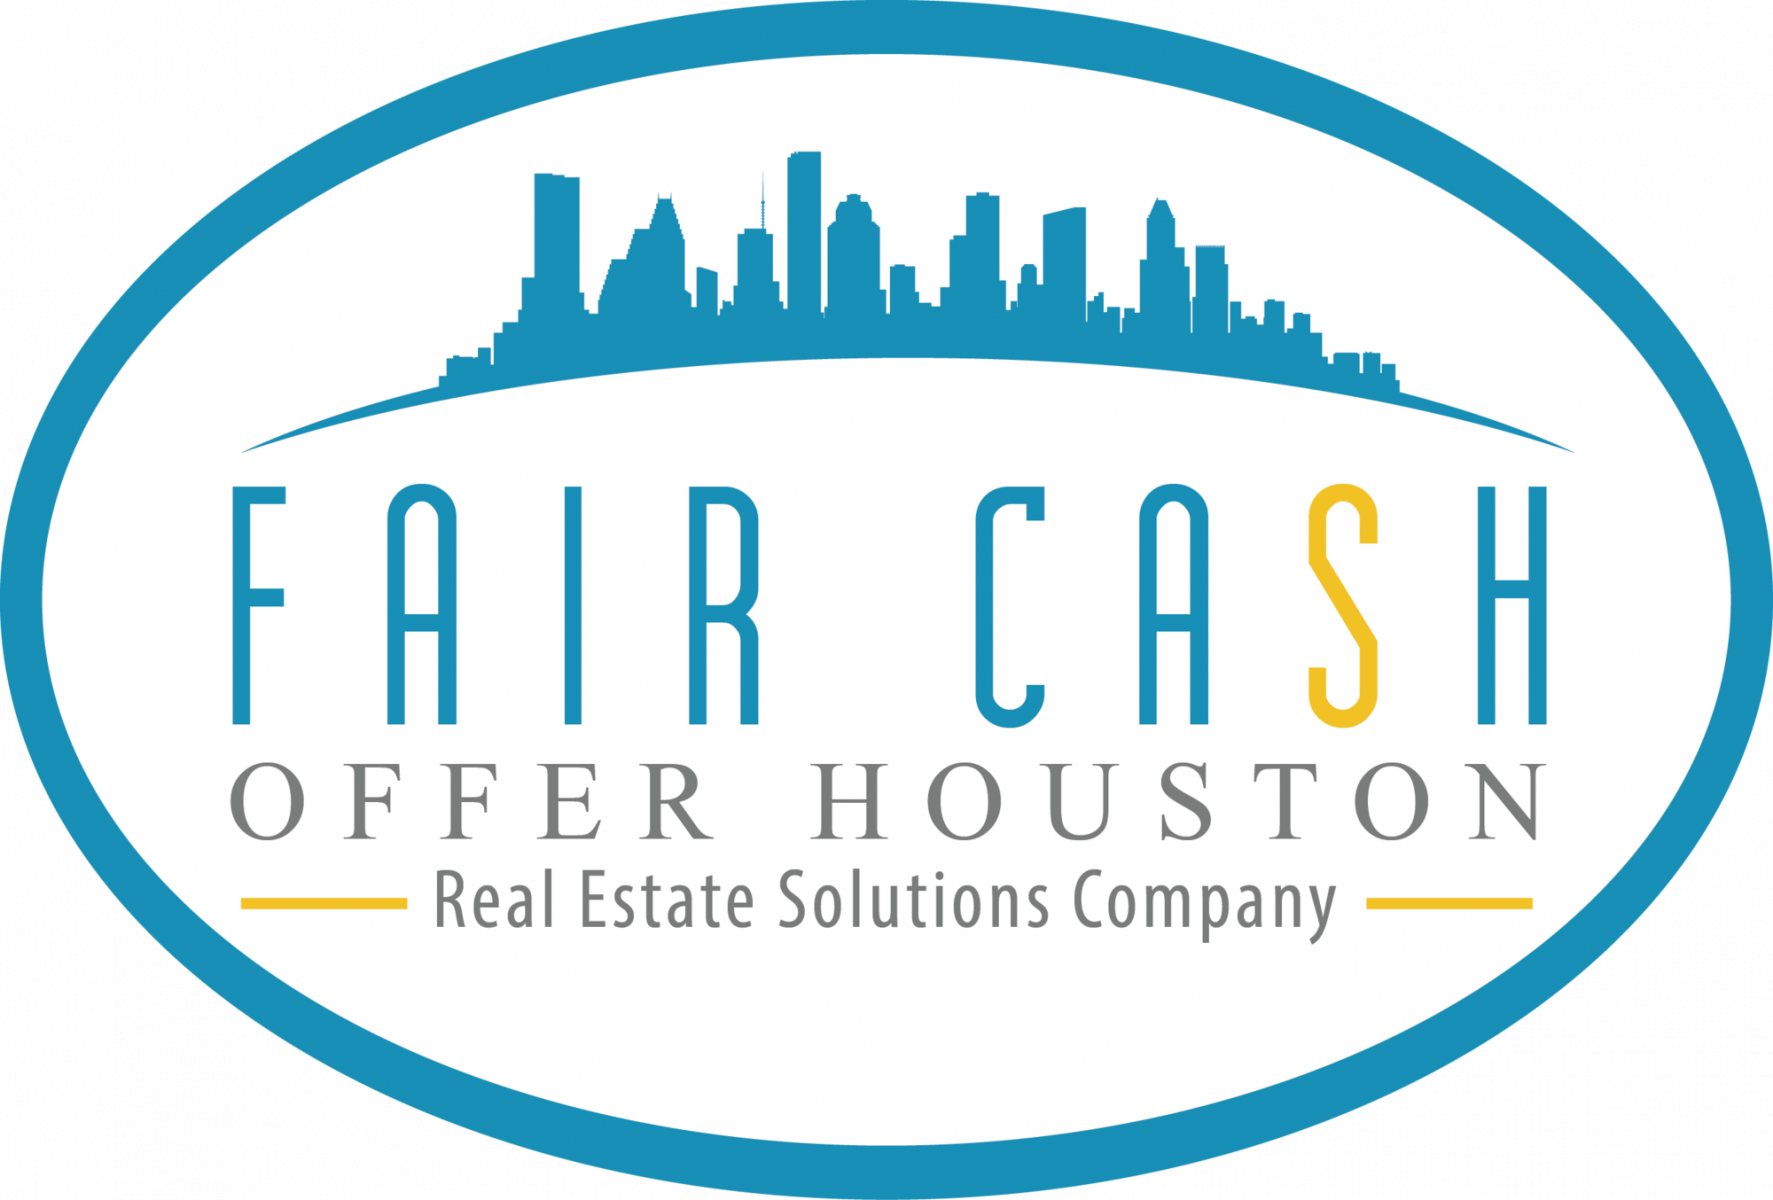 Fair Cash Offer Houston logo